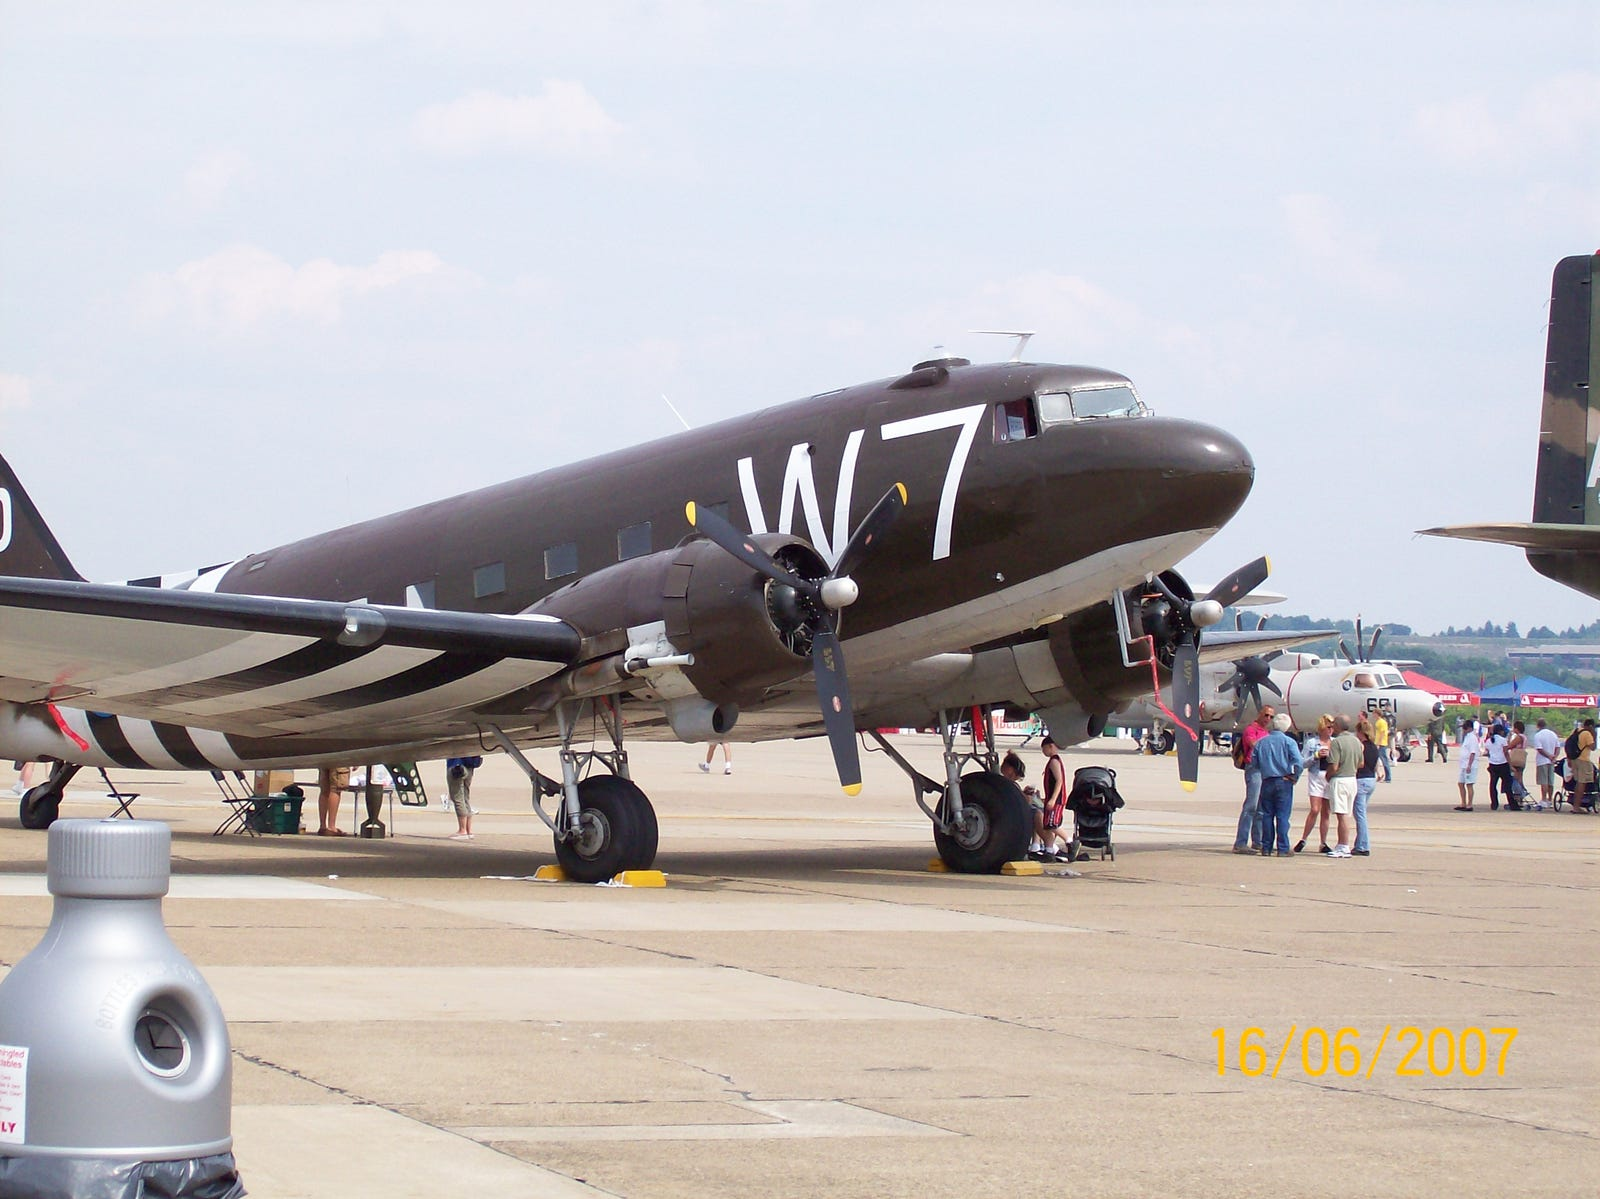 C-47 with invasion stripes